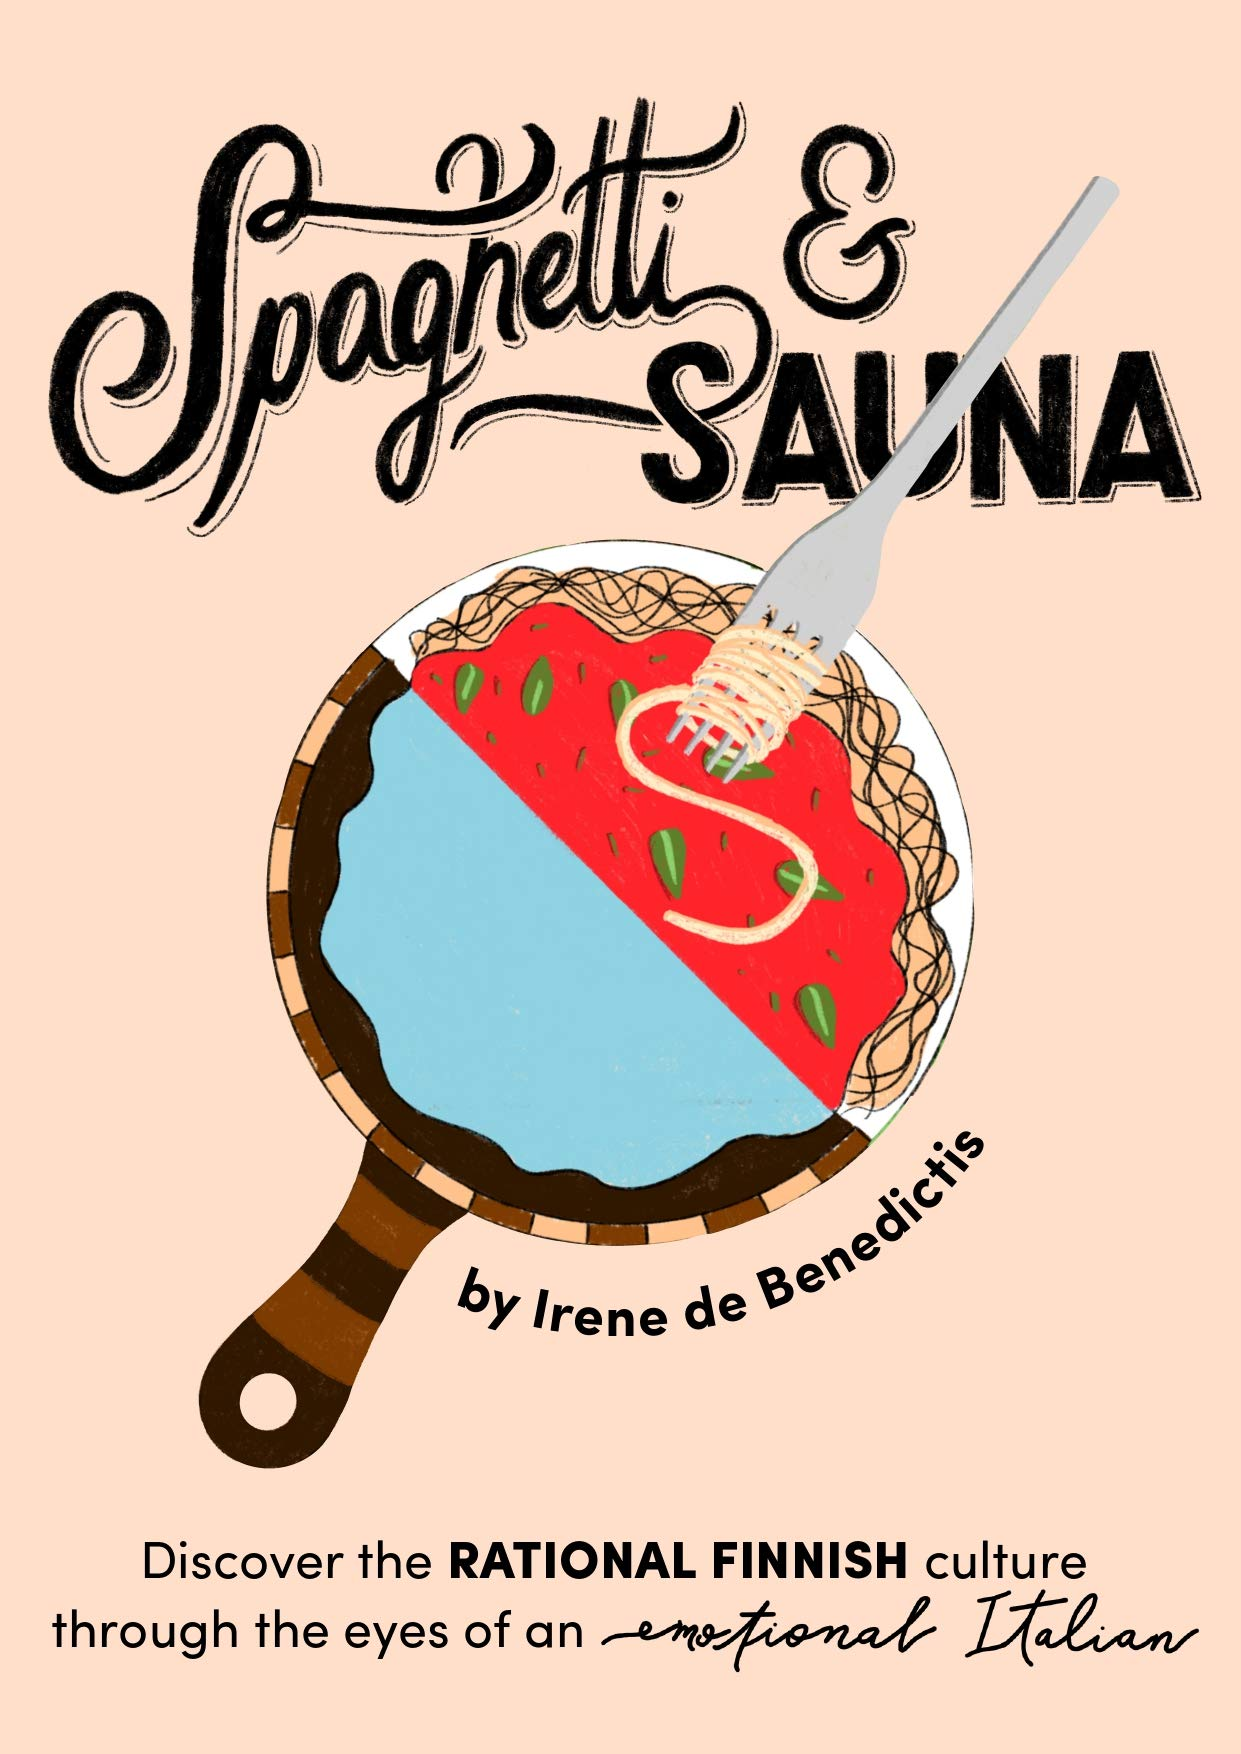 SPAGHETTI & SAUNA: Discovering the RATIONAL Finnish culture, through the eyes of an EMOTIONAL Italian